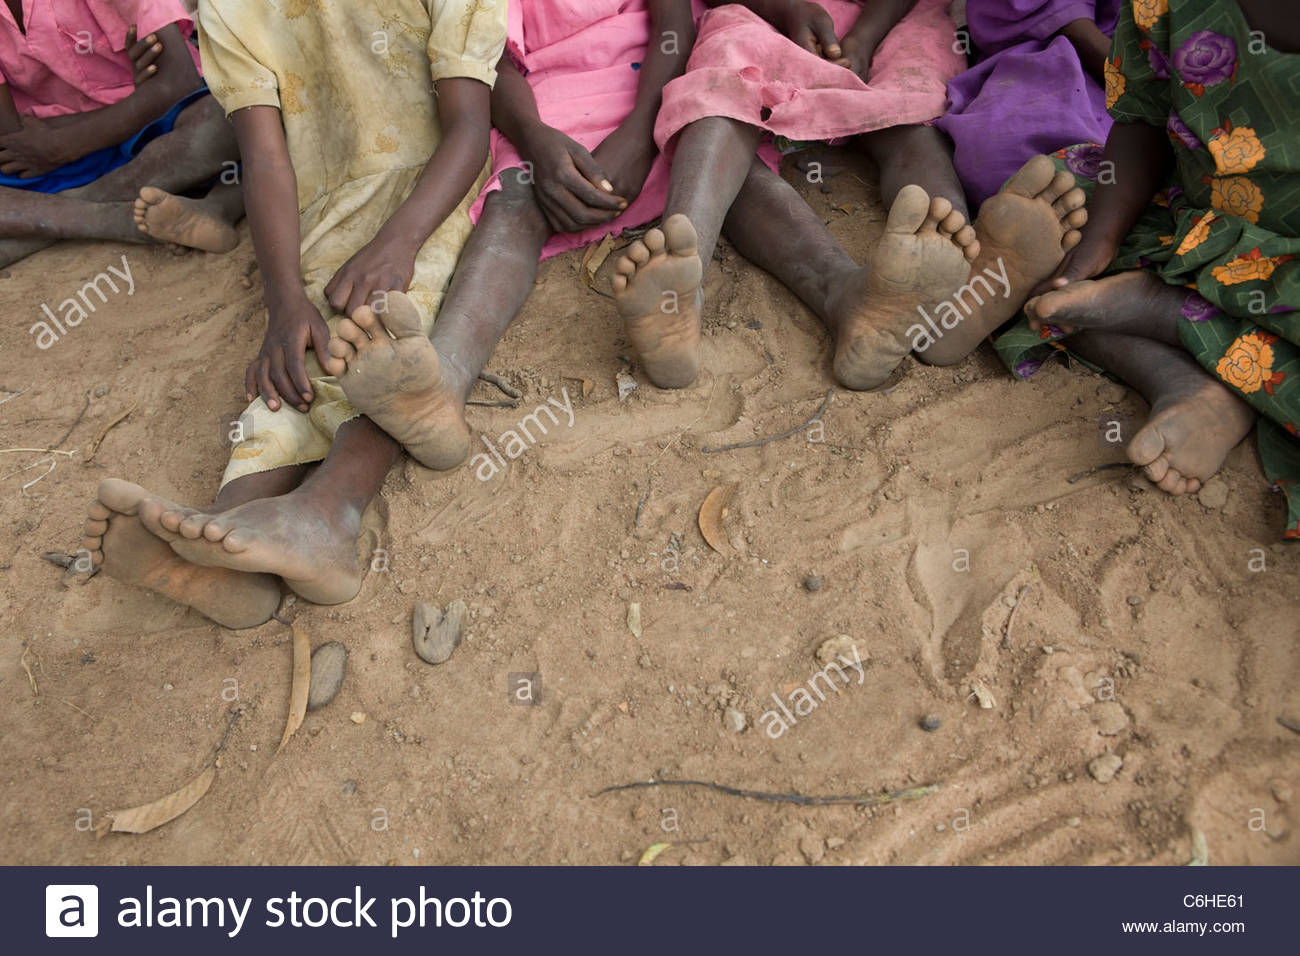 Children's bare feet at a refugee camp - Stock Image